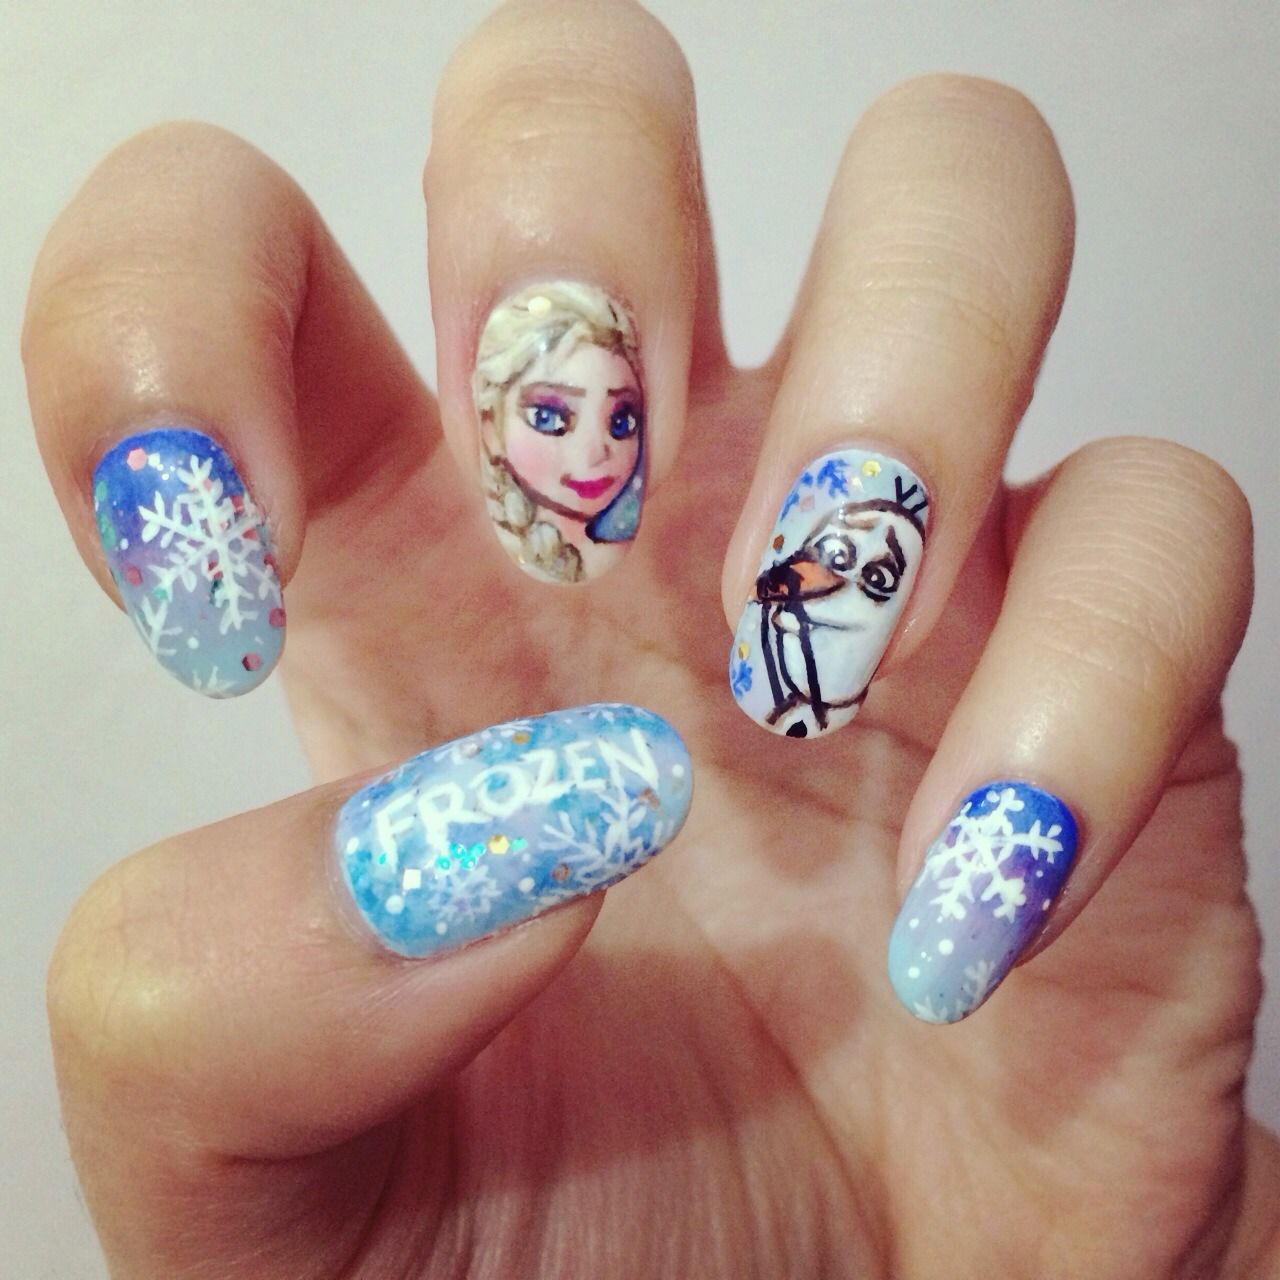 lovelynailnail: ELSA is difficult to draw of character one on the ...